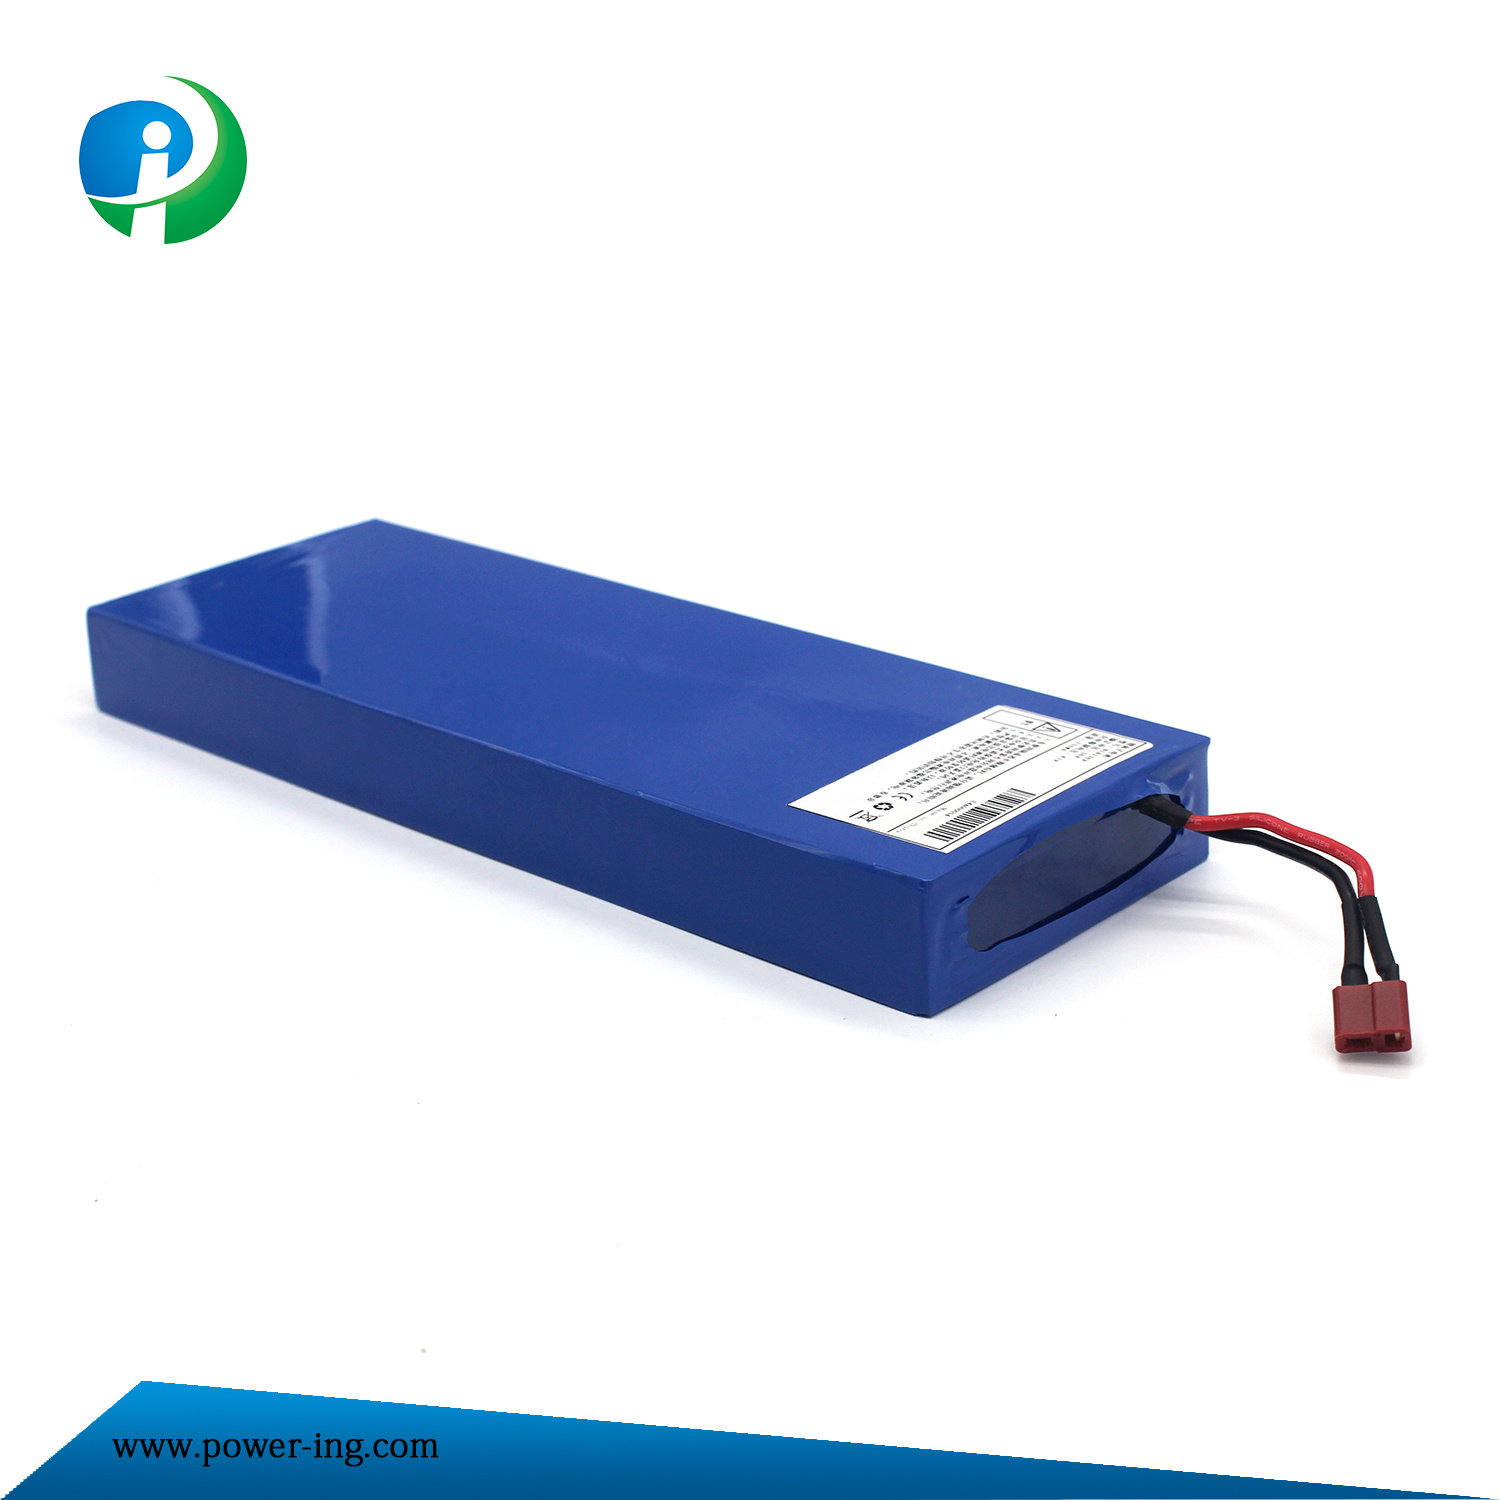 36V High-Capacity Li-ion Battery Pack for E-Scooters